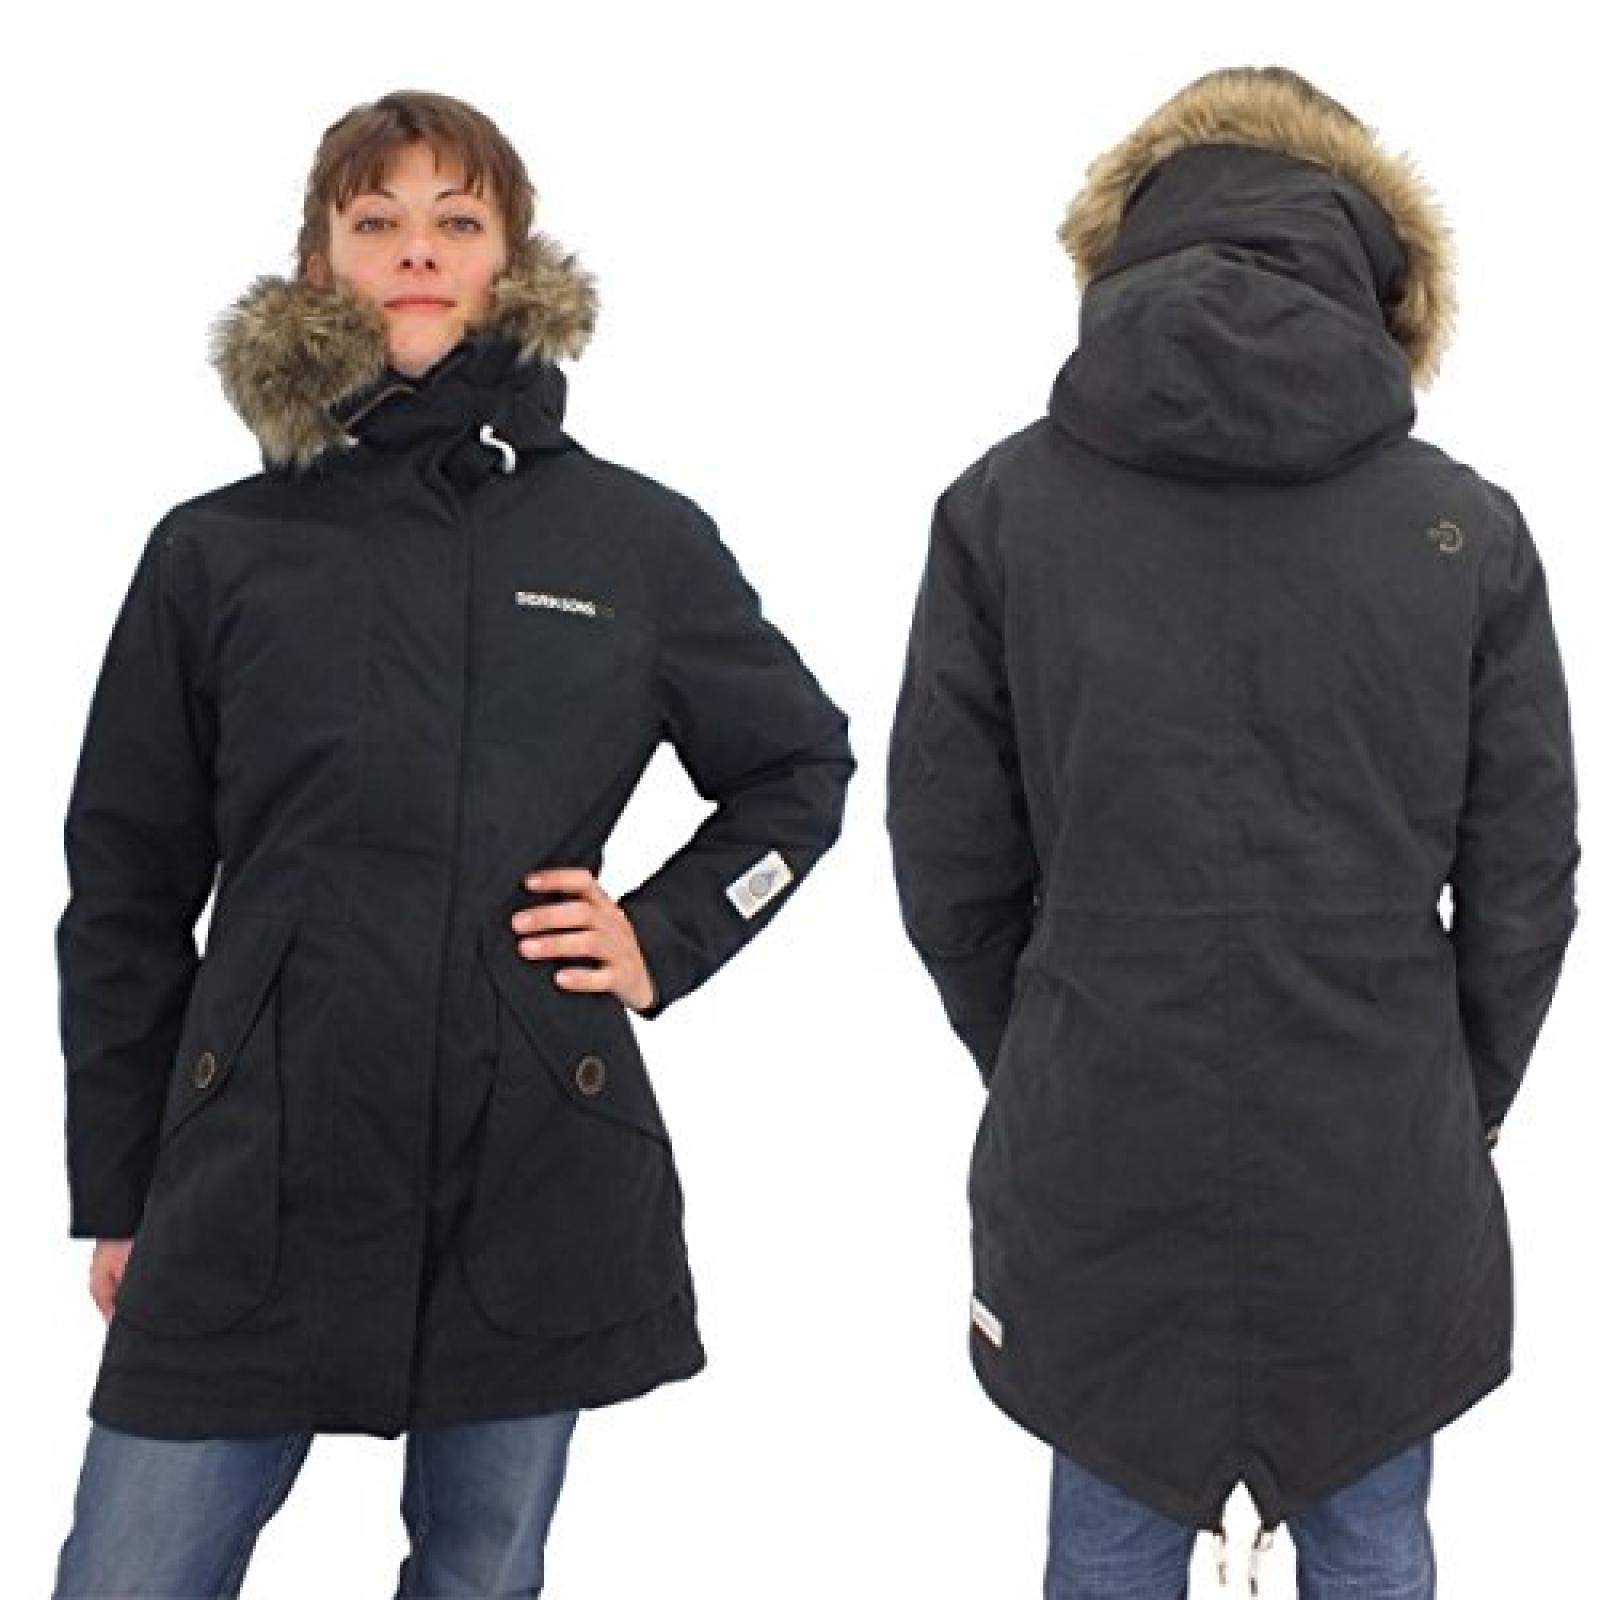 Damen Outdoor-Jacke / Winterjacke Angelina Wmns Parka